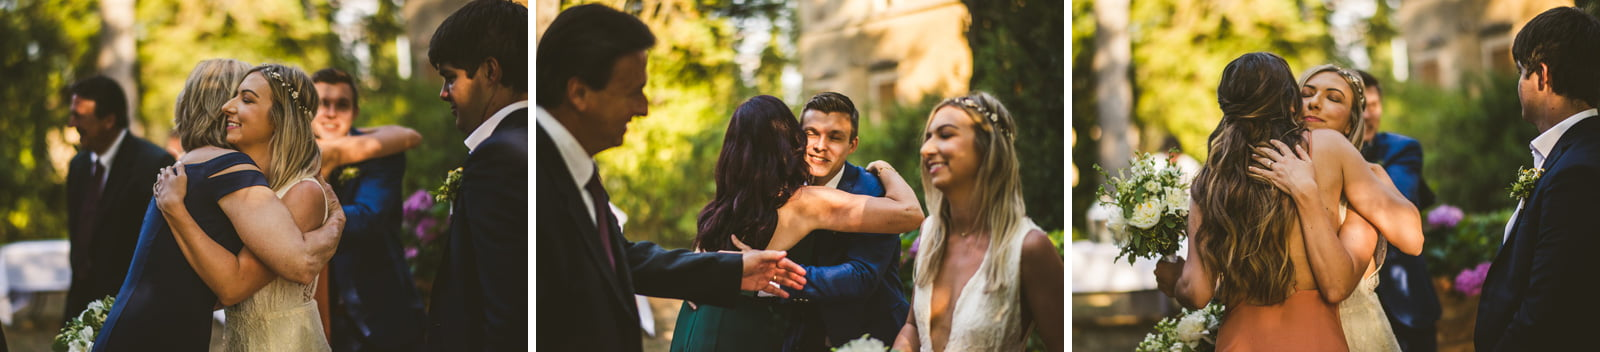 A+L Wedding at Montechiaro, Siena by Federico Pannacci 63